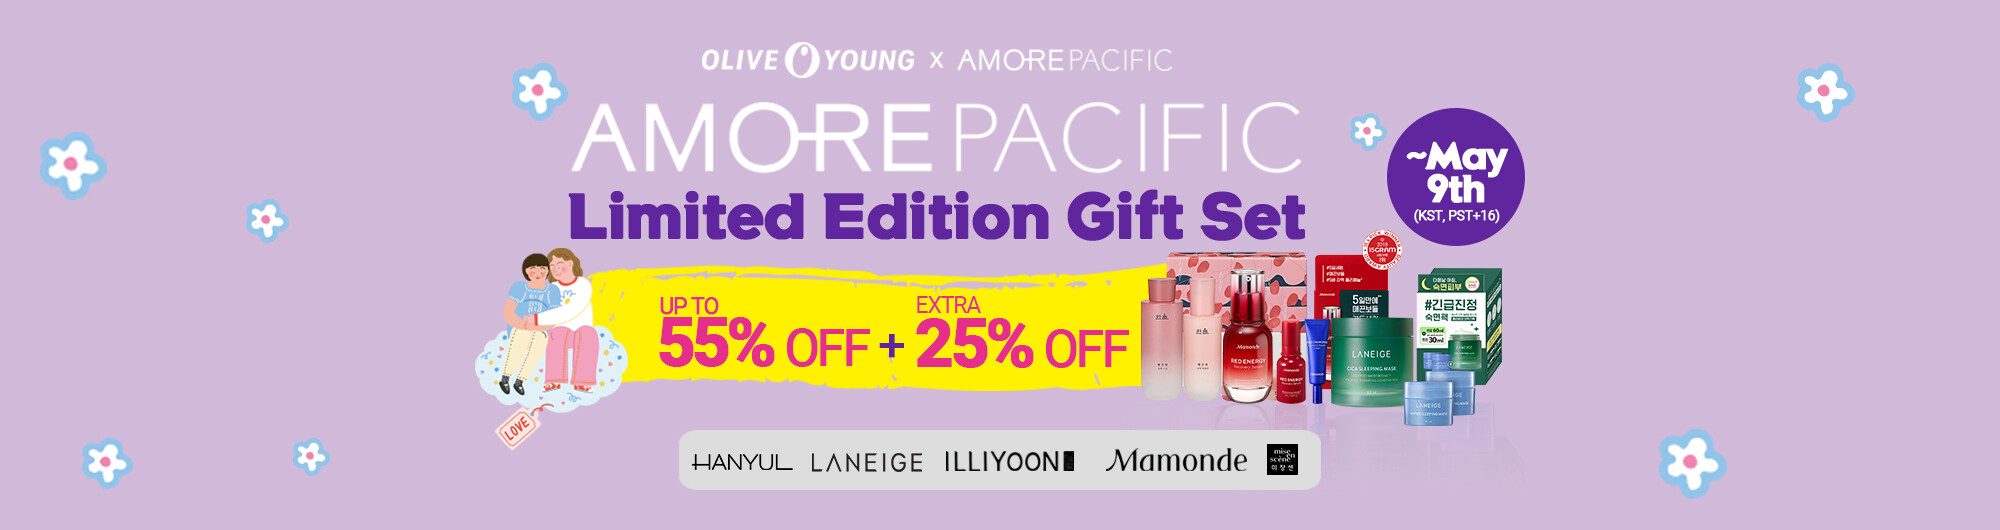 Olive Young X AMORE PACIFIC